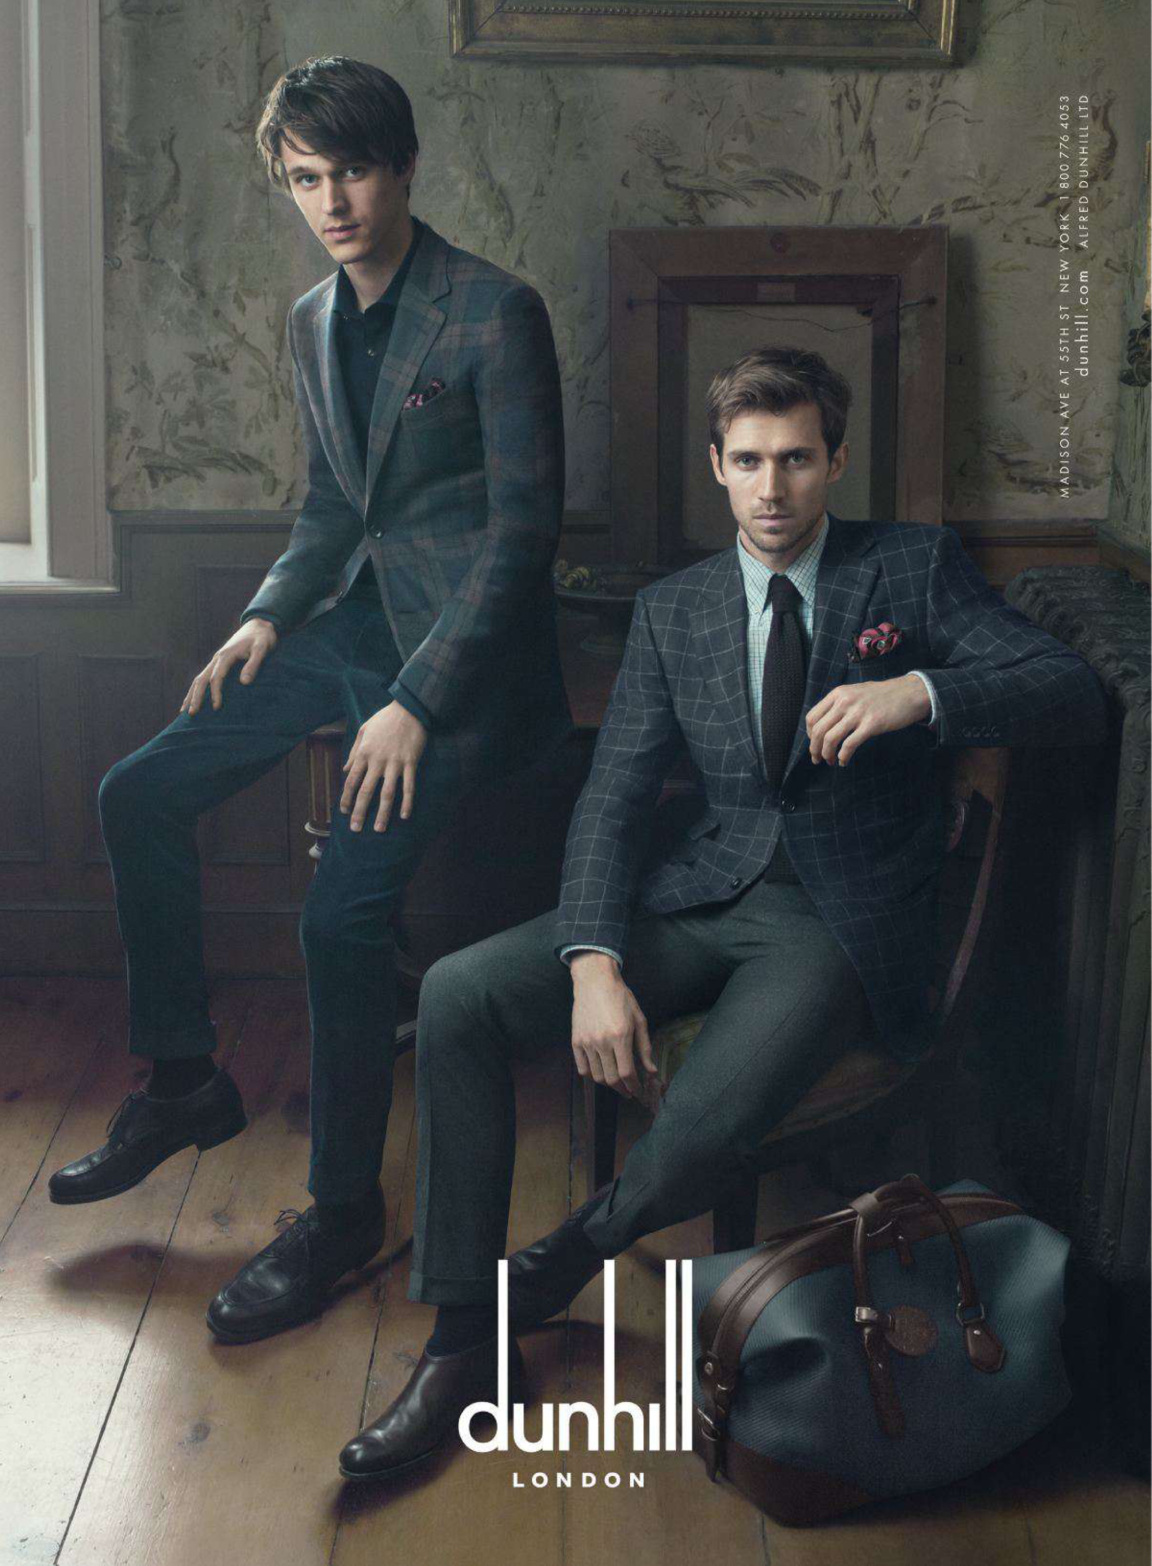 Dunhill Fall/Winter 2014 Campaign with Andrew Cooper, Tara Ferry & Norbert Michalke image